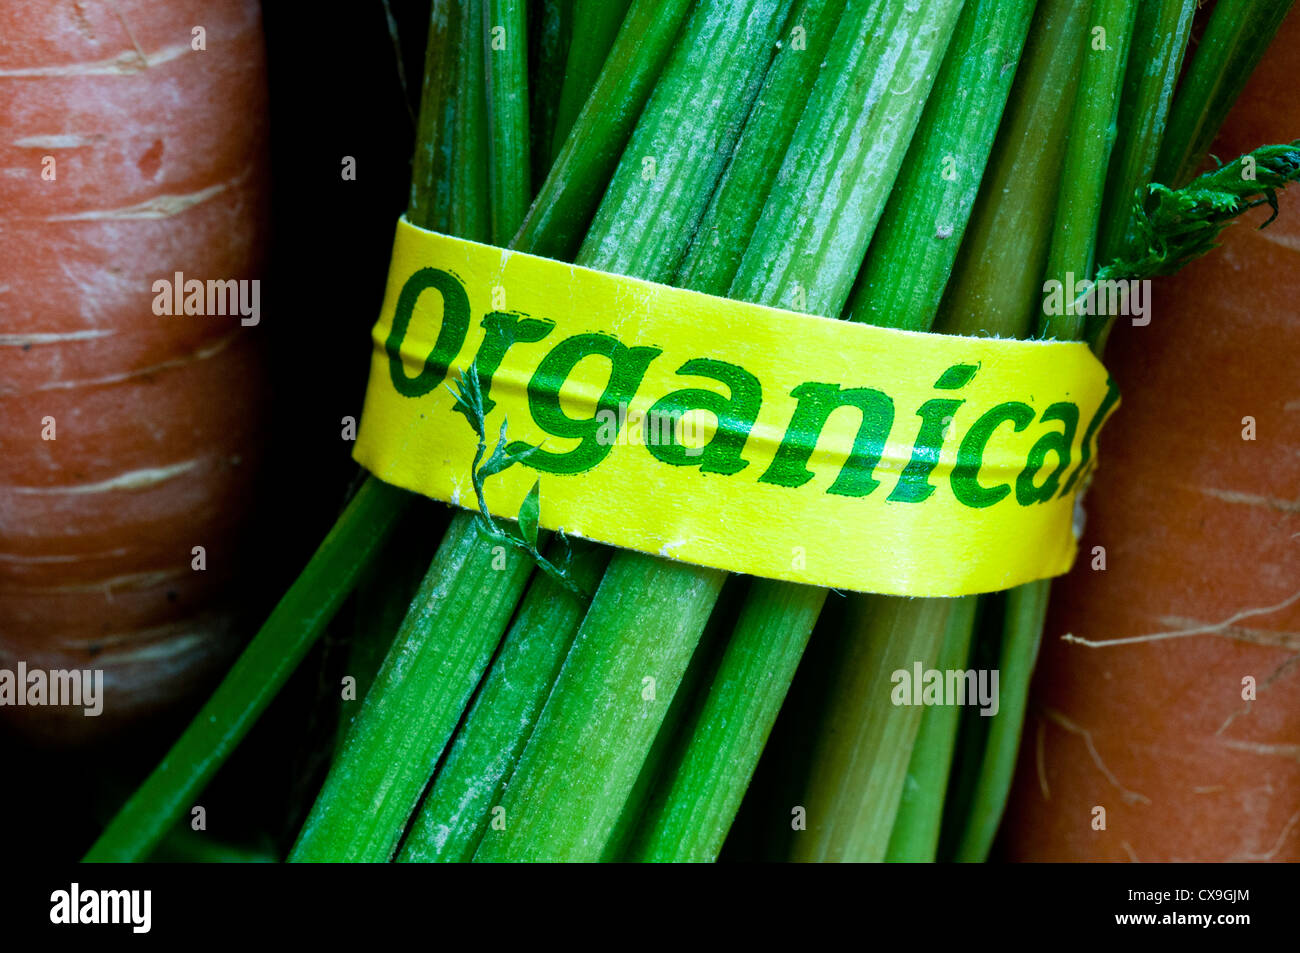 Organic label on bunch of carrots - Stock Image